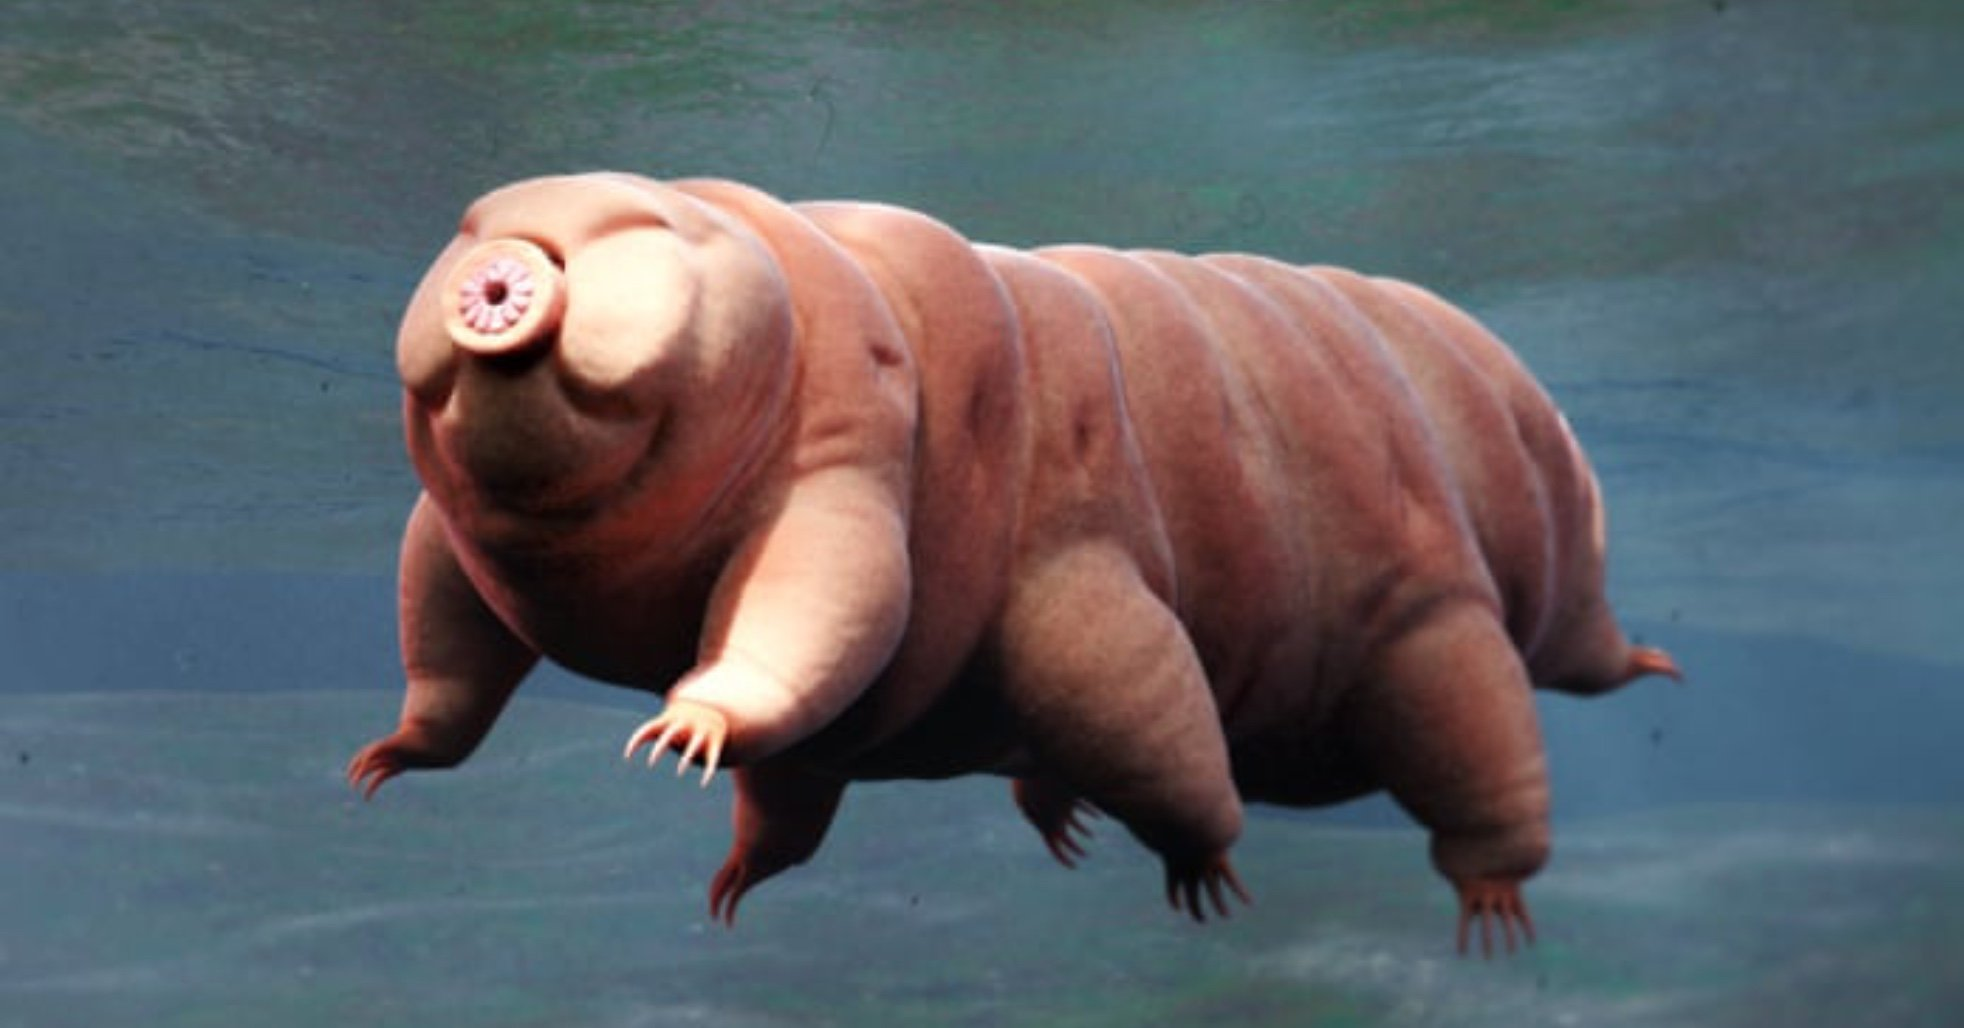 sus.jpg?resize=412,232 - 10 of the World's Strangest Animals You Have Never Seen Before